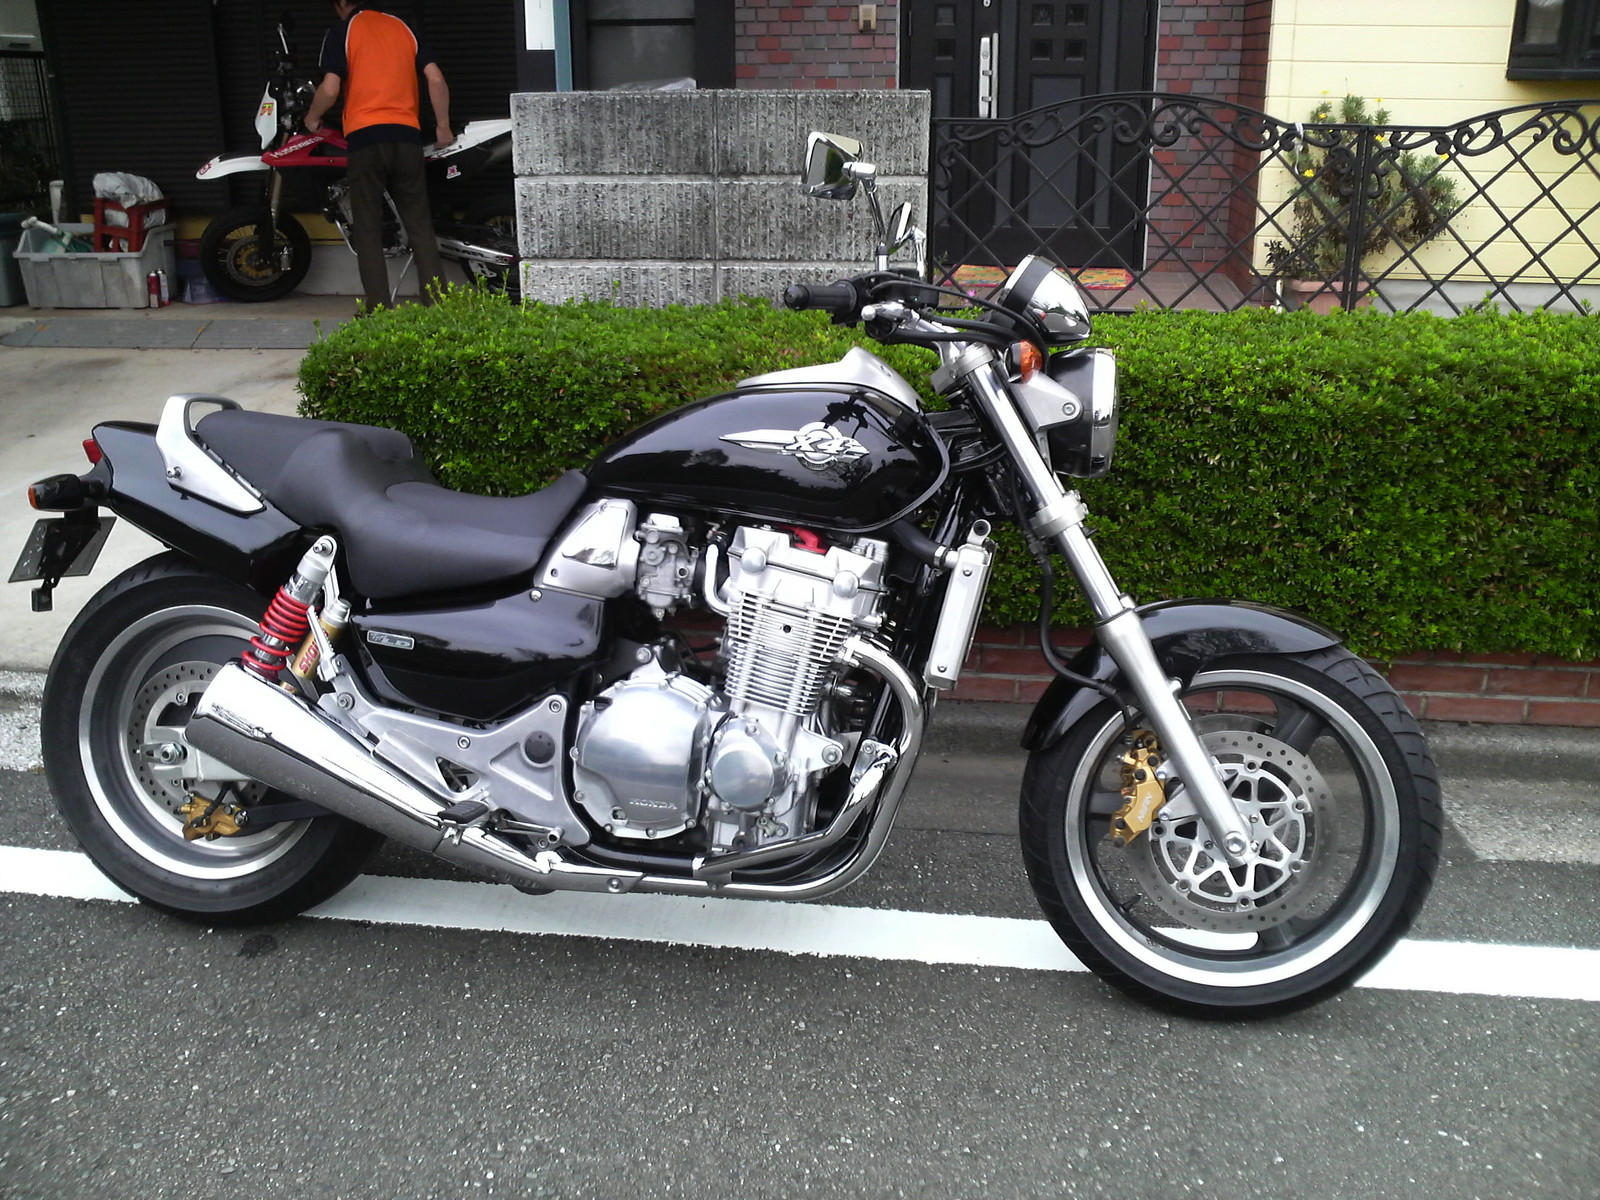 Honda Motorcycles Related Images Start 450